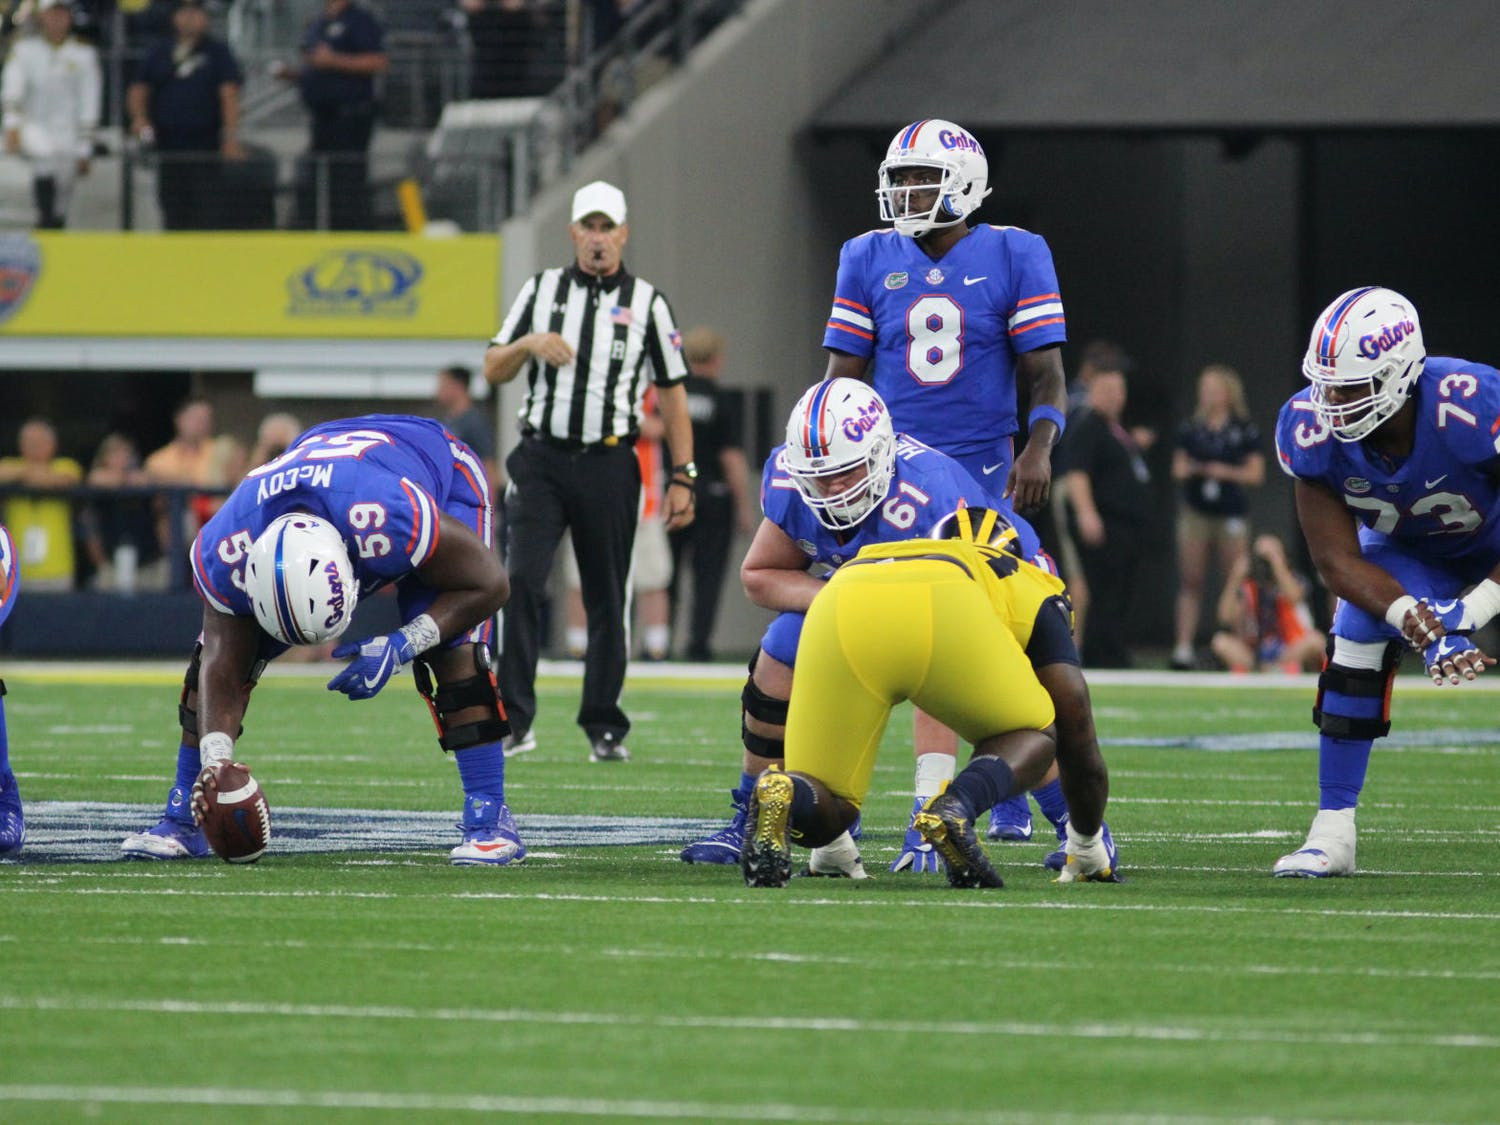 Malik Zaire made his first start of the year in place of Feleipe Franks, completing 13 of 19 passes for 158 yards in Saturday's 45-16 loss to Missouri in Columbia.